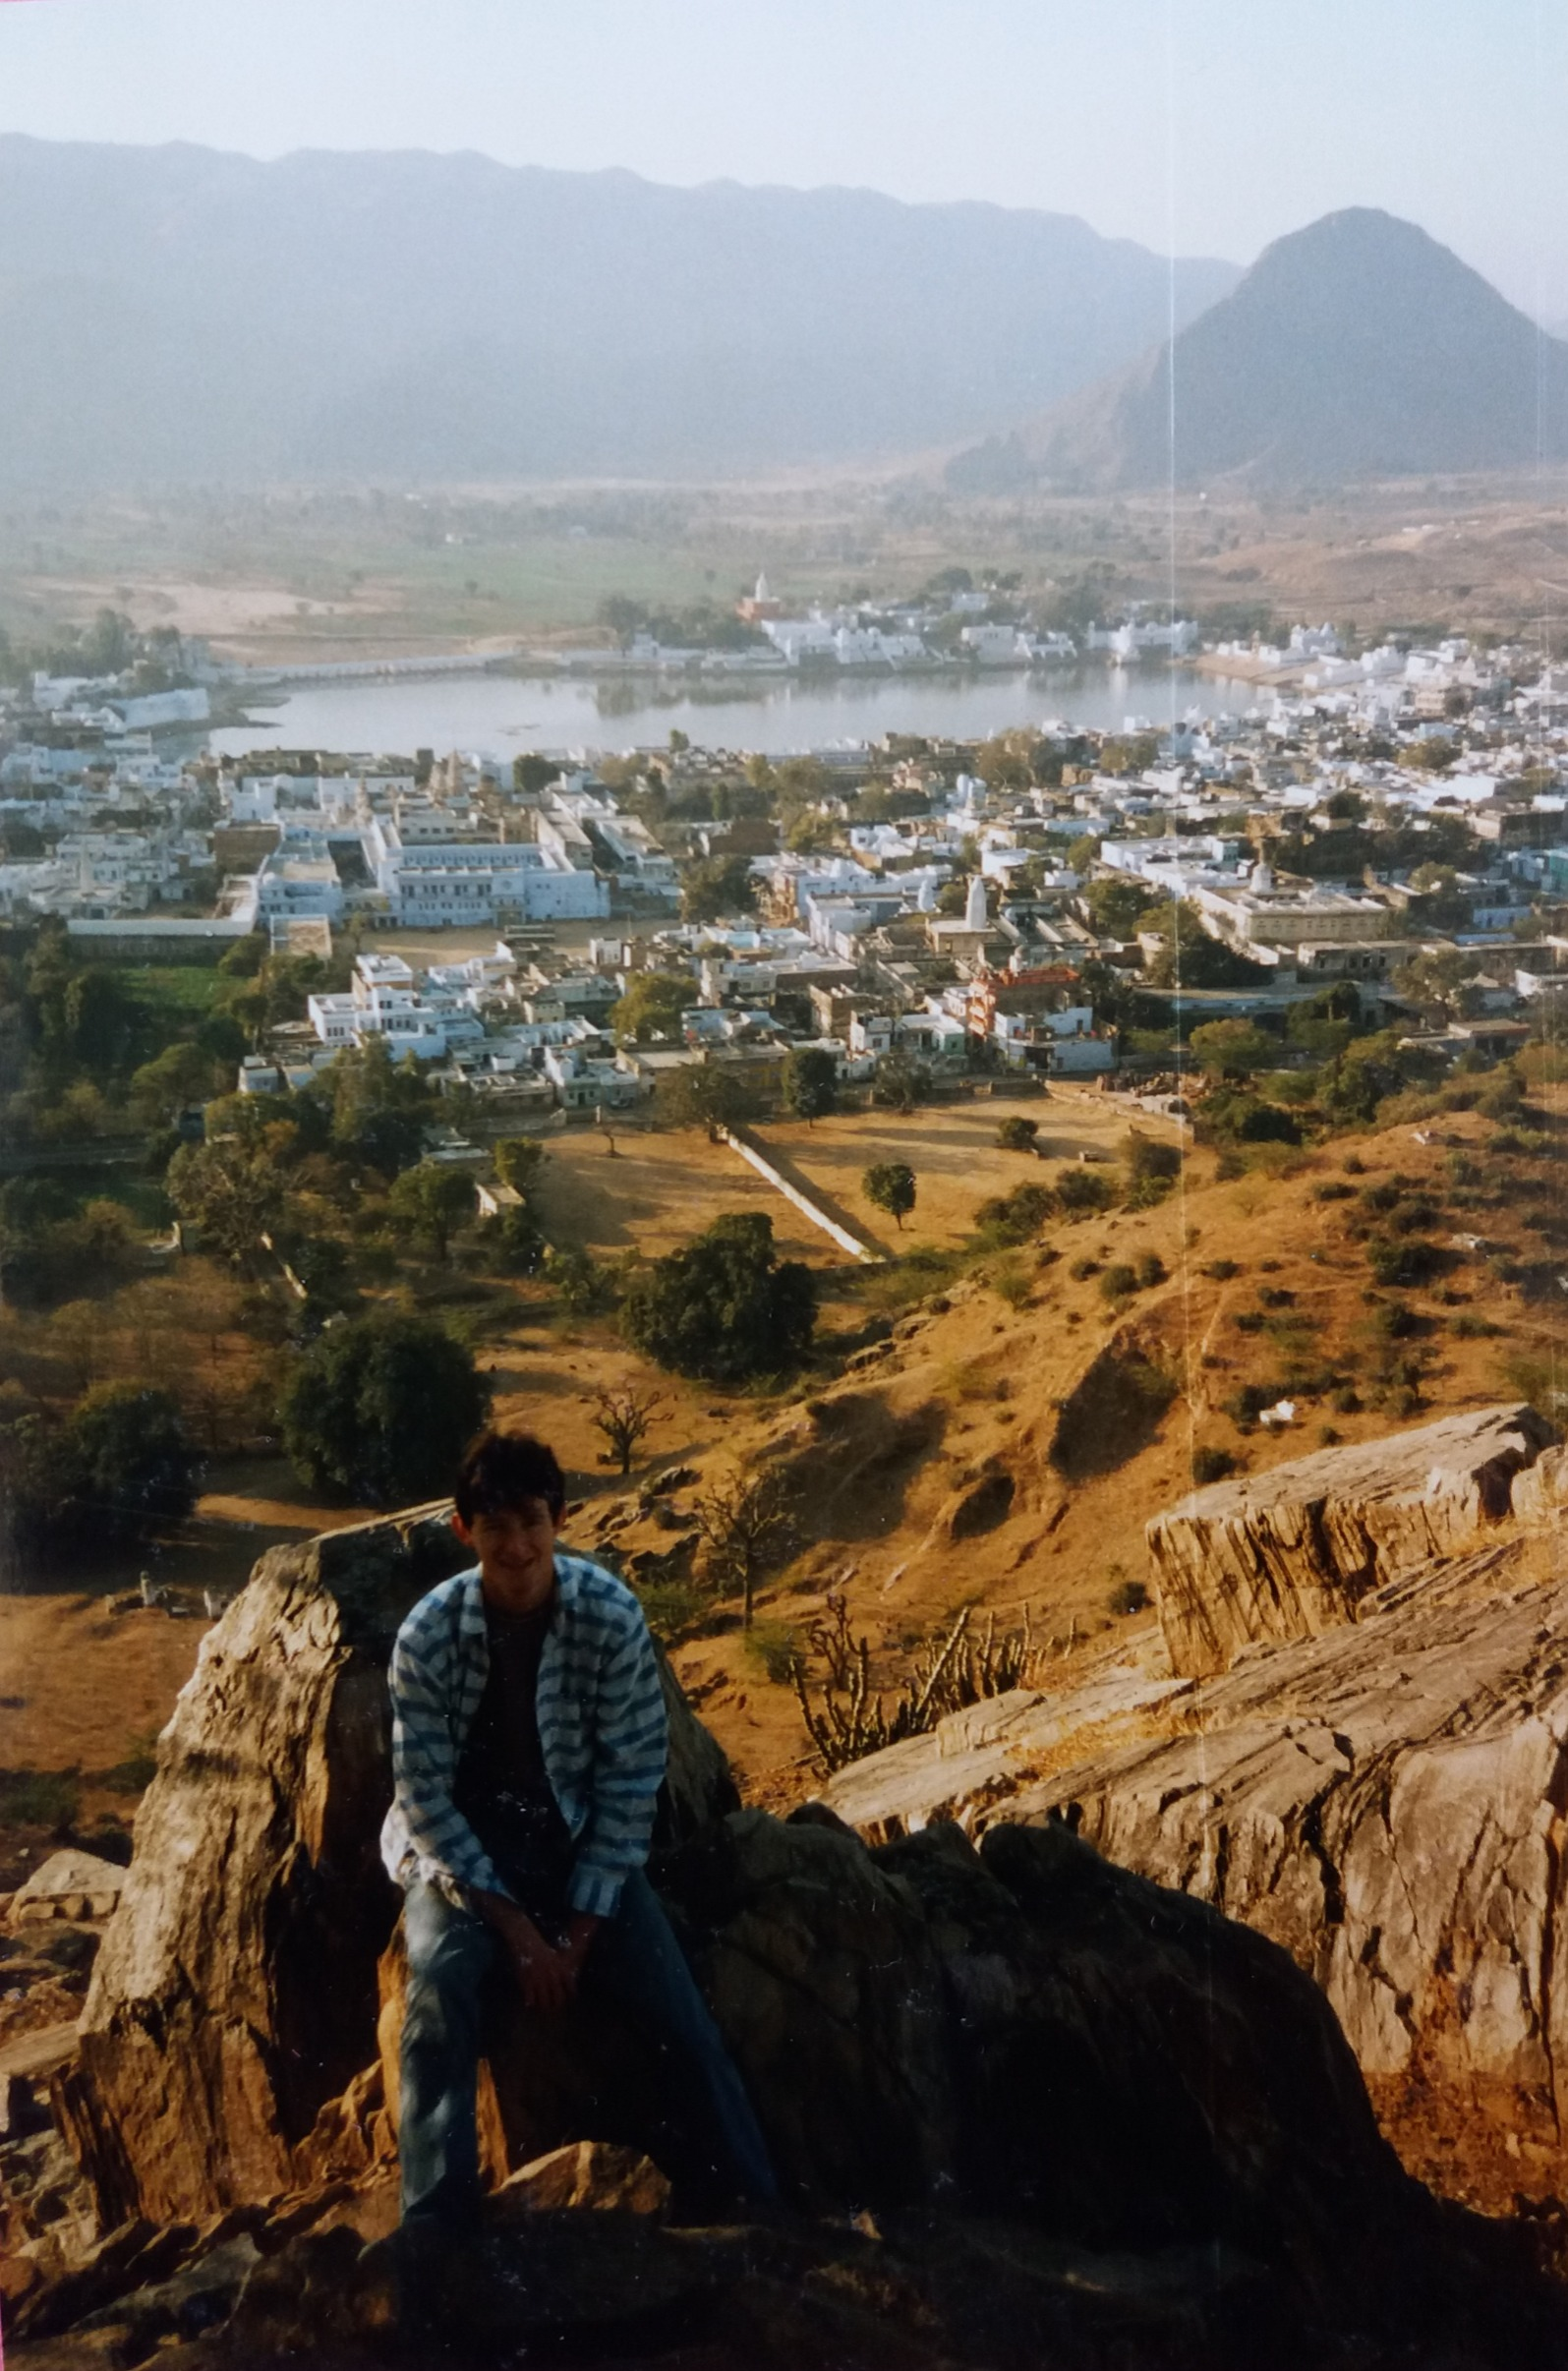 India diary - Day 19 - Pushkar